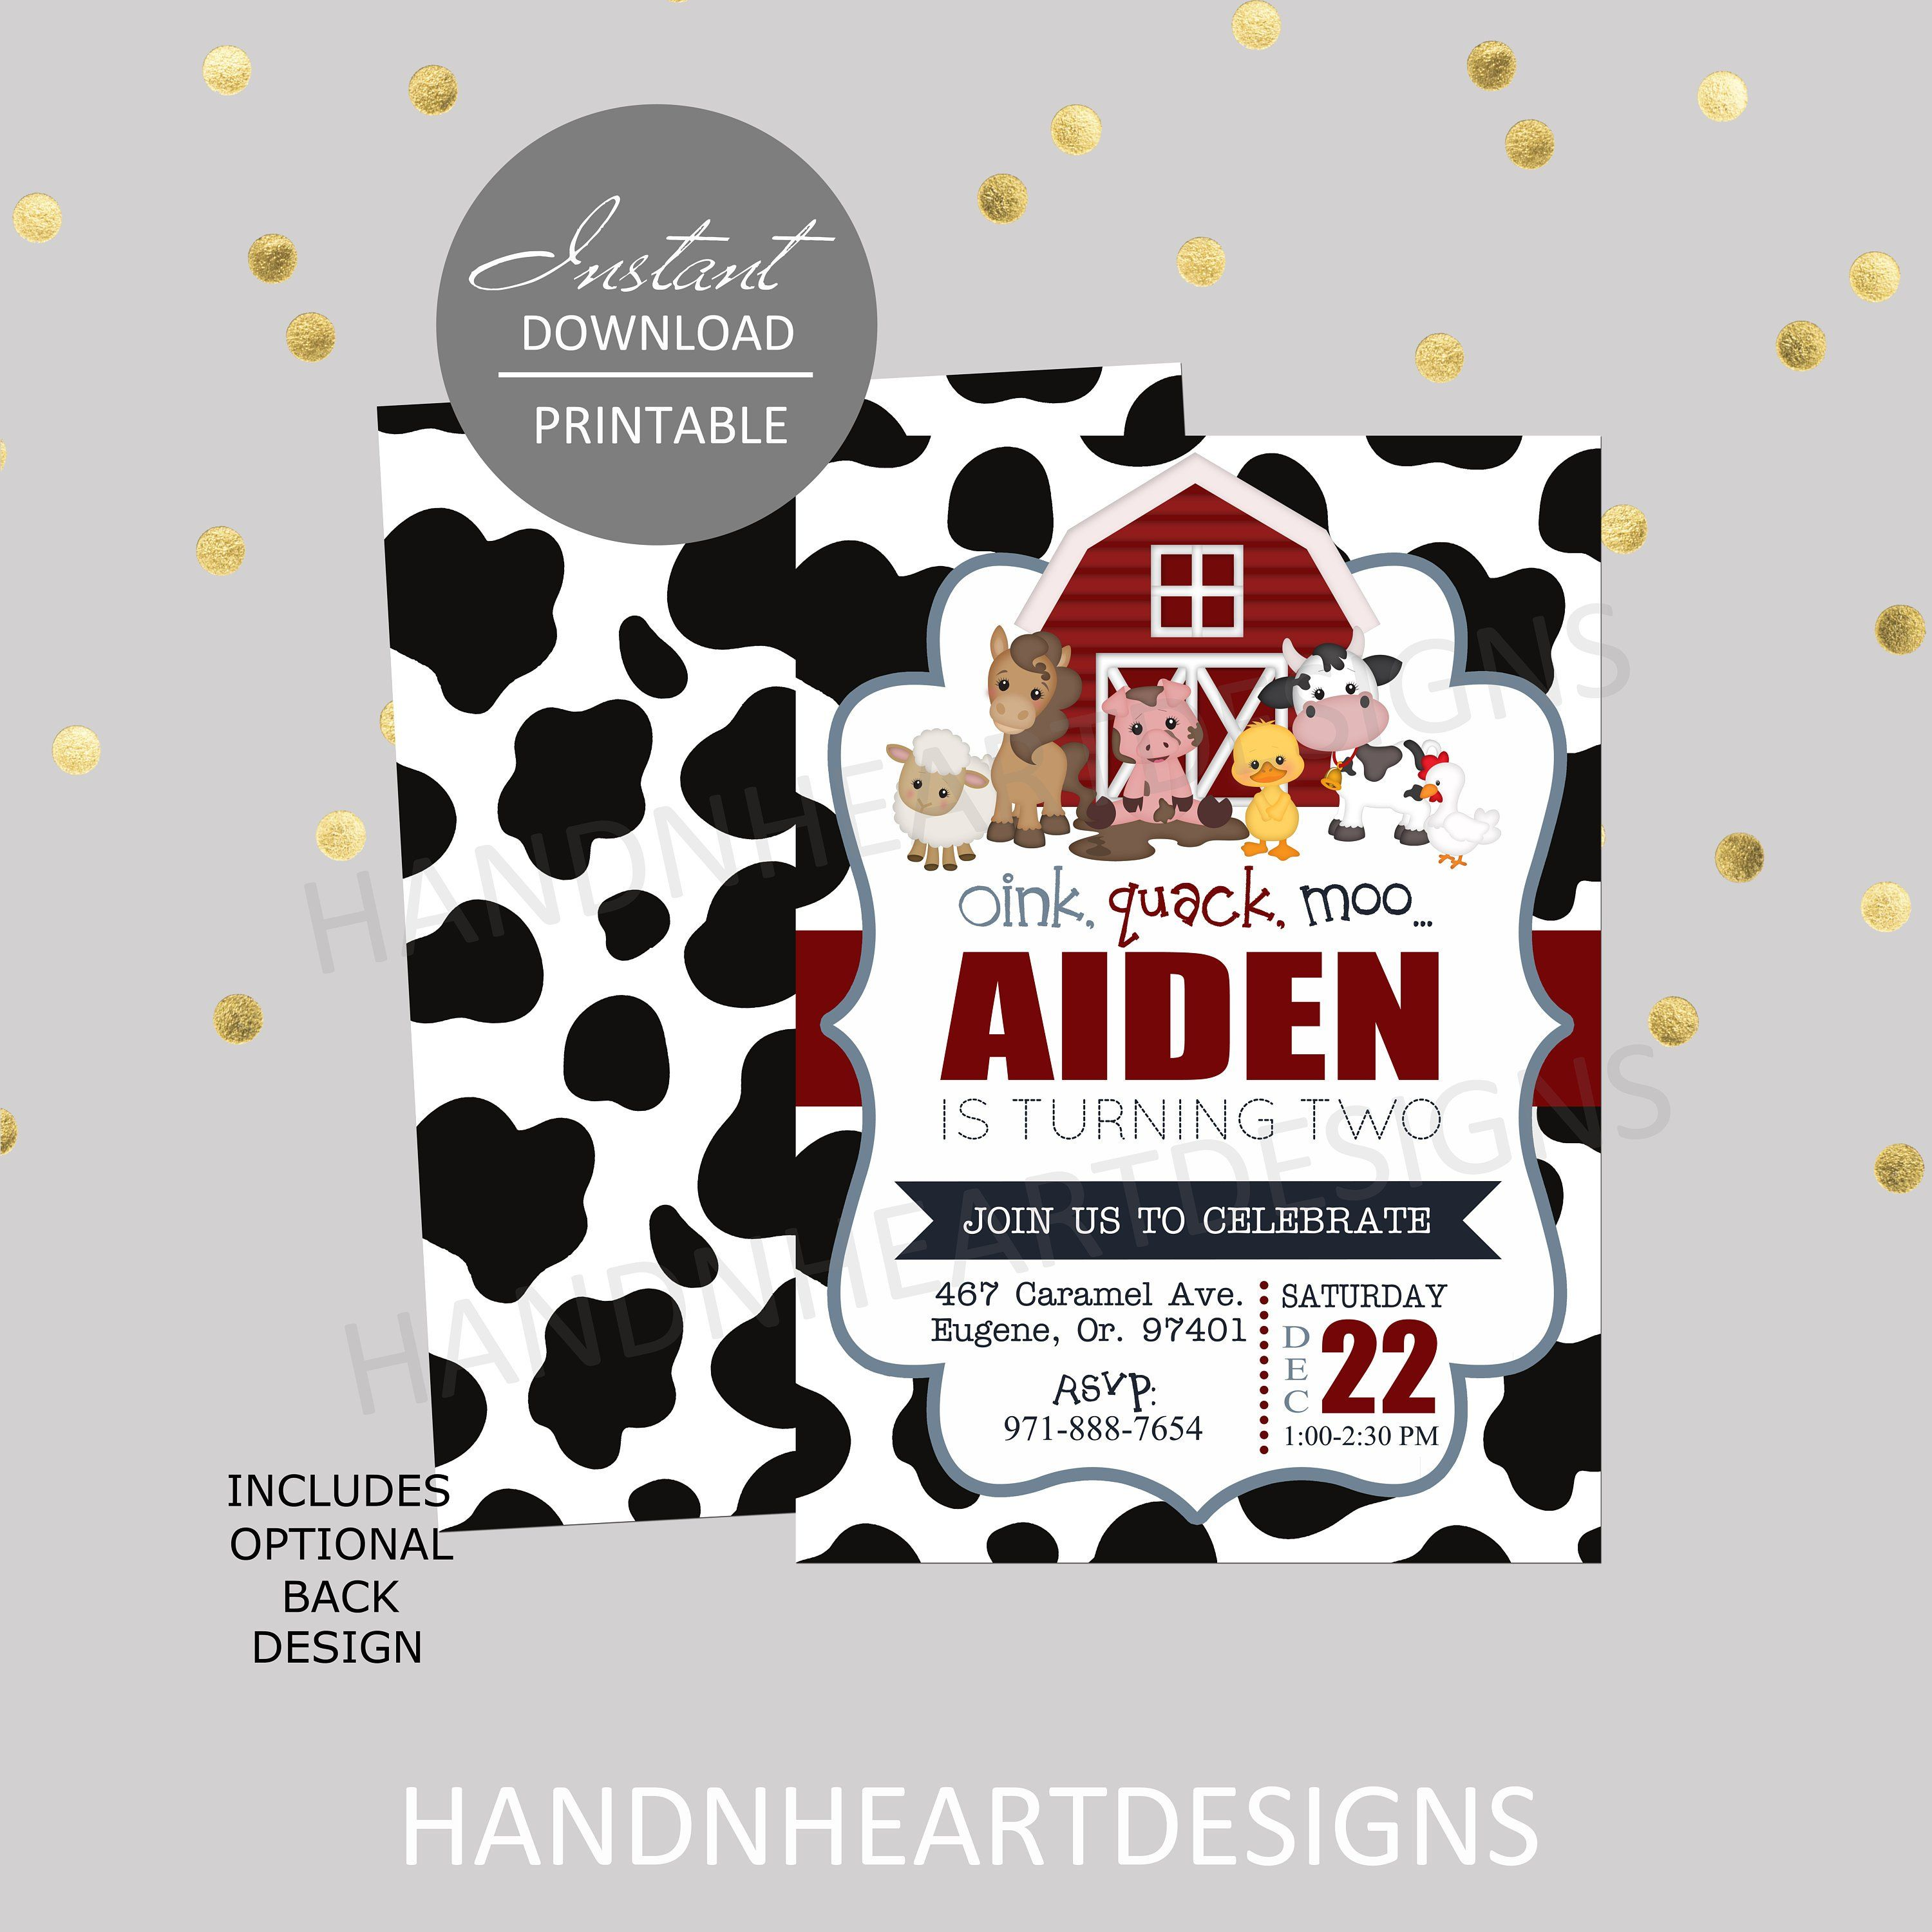 Printable Barnyard Birthday Invitationfarm Themed Party Instant Download5x7 Or 4x6 Red And Blue Polka Dots By Handnheartdesigns2 On Etsy